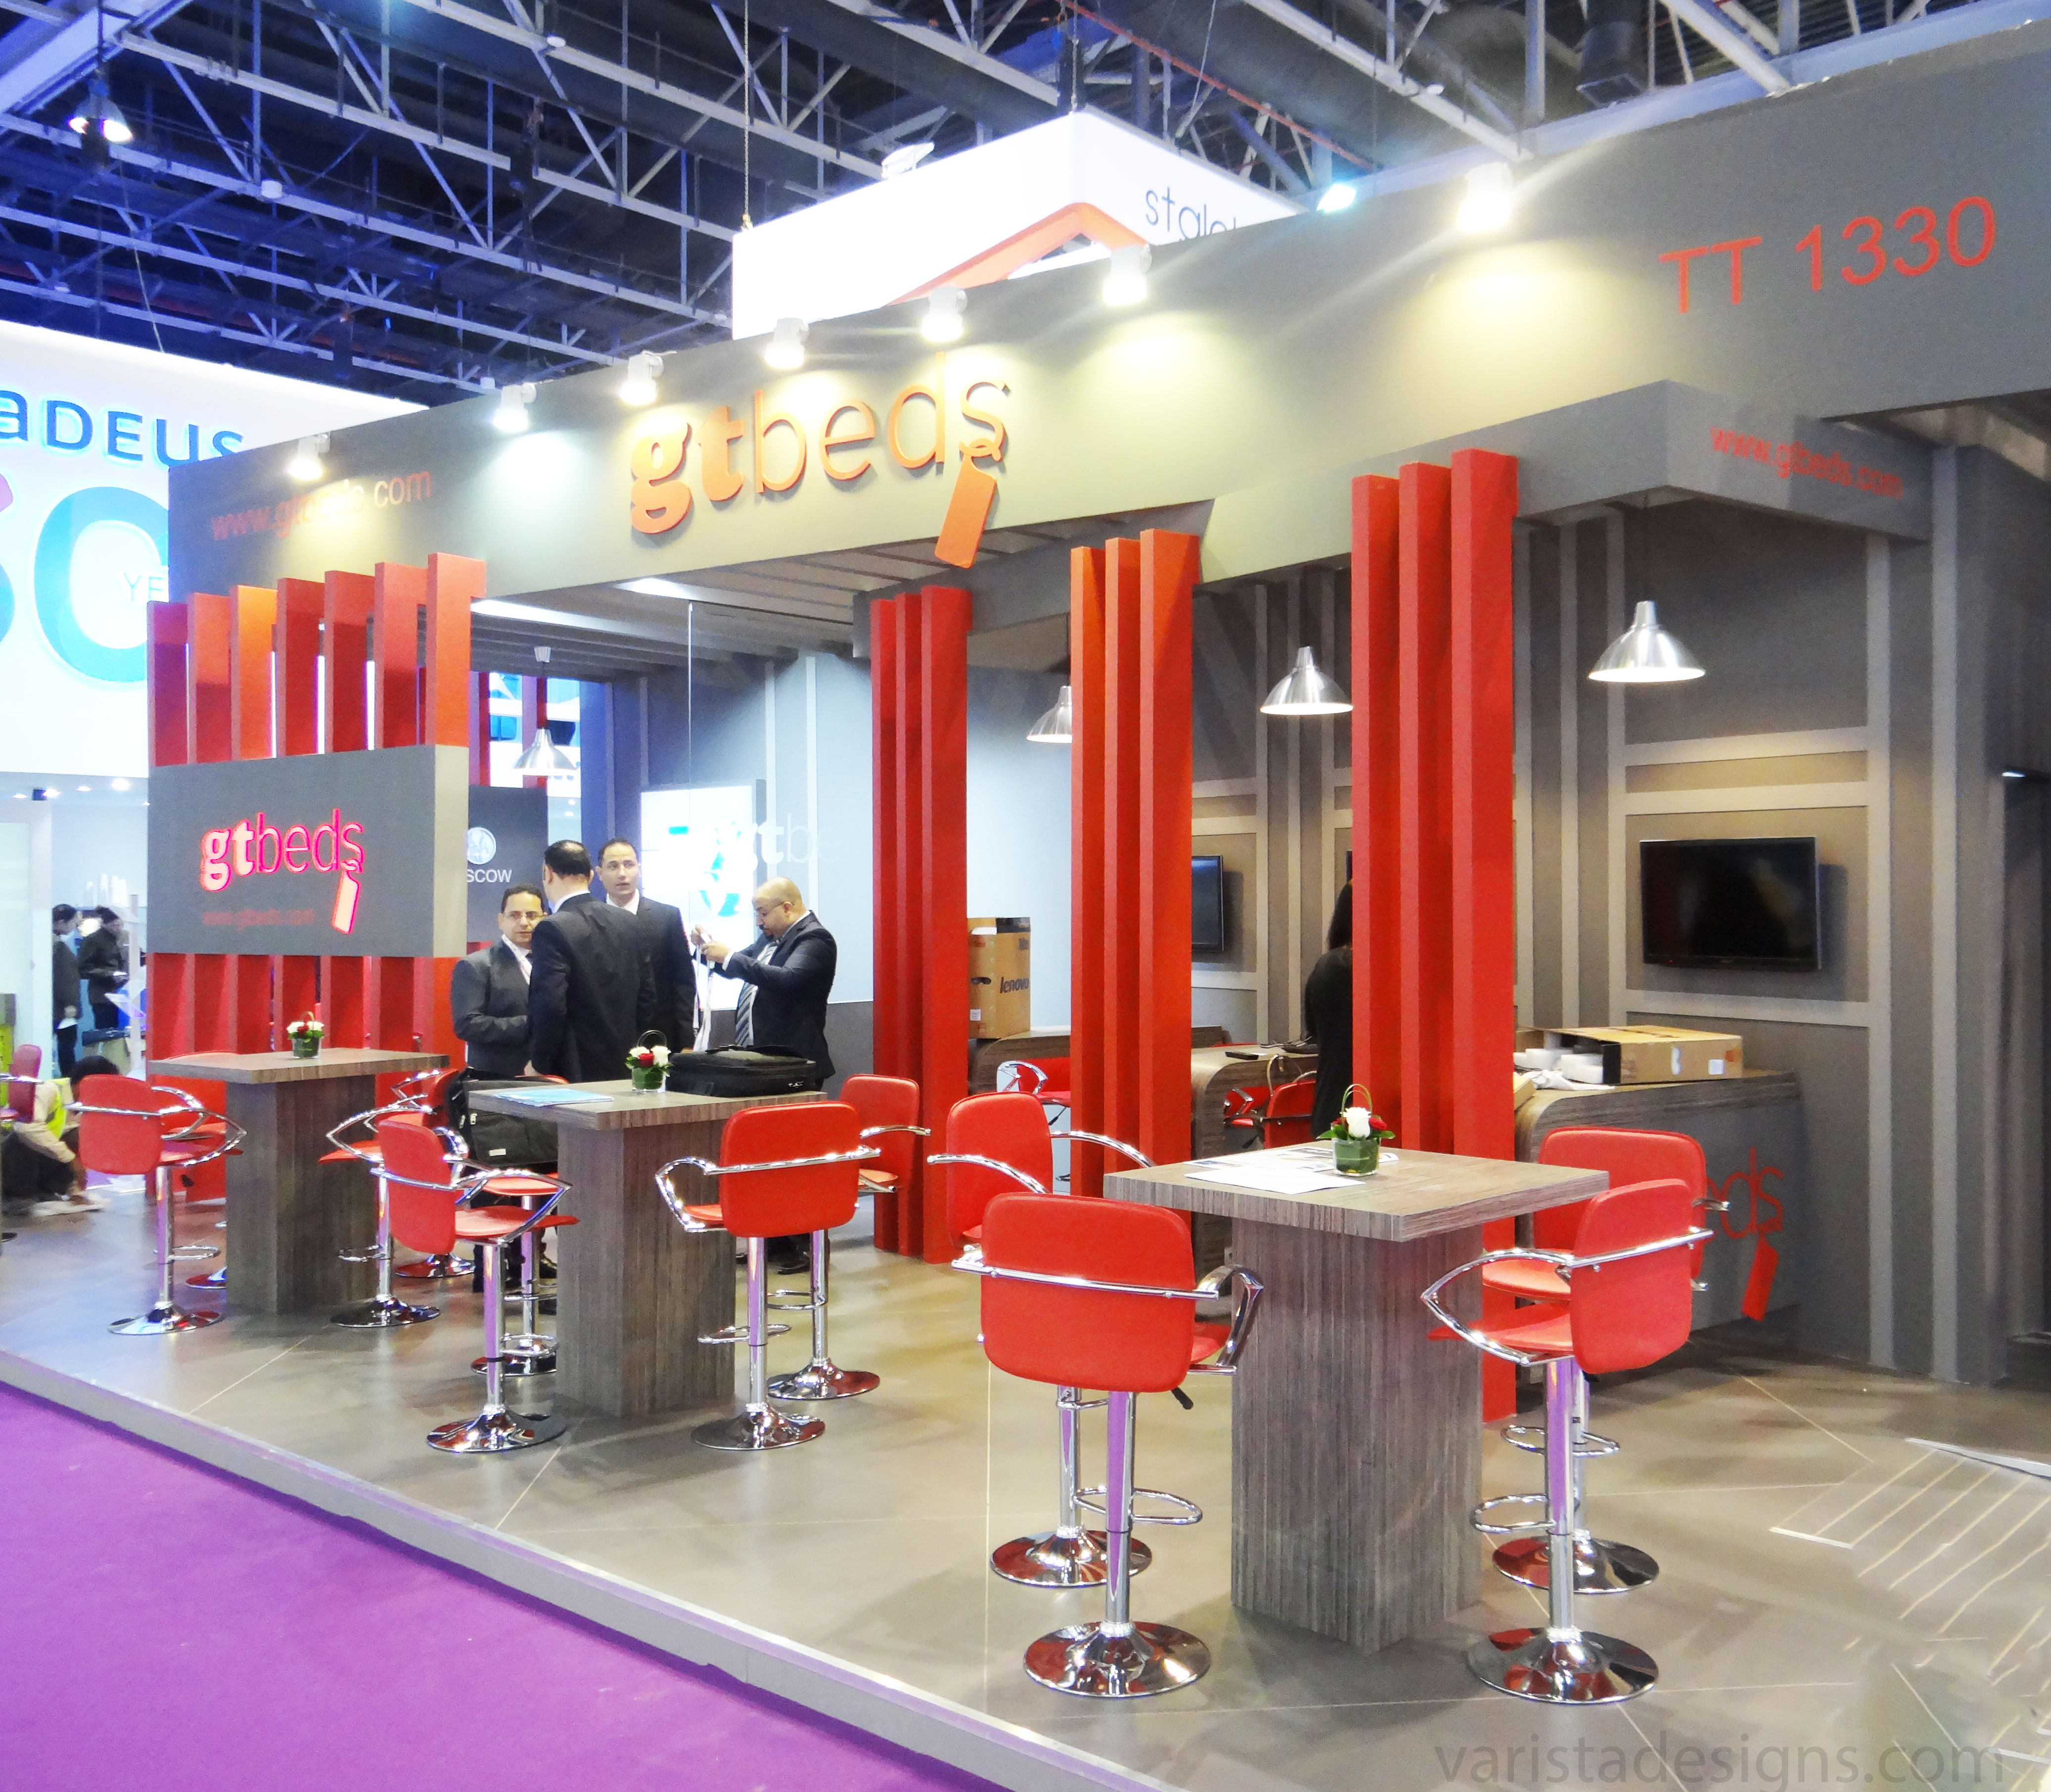 Exhibition Booth Designer : Arabian travel market exhibition booth show held at dubai